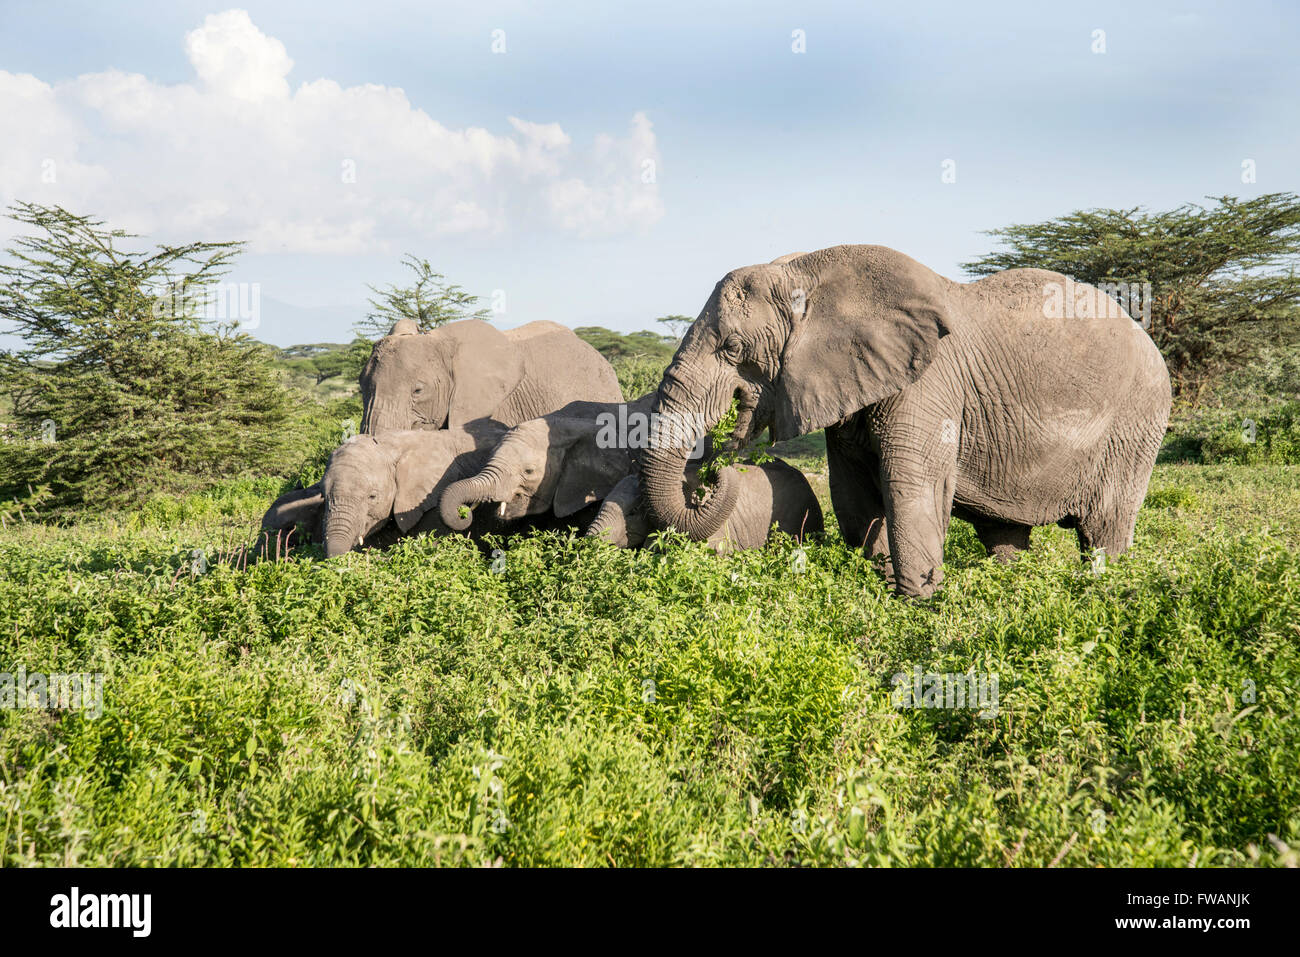 Elephant (Loxodonta africana). Family group browsing and grazing. - Stock Image